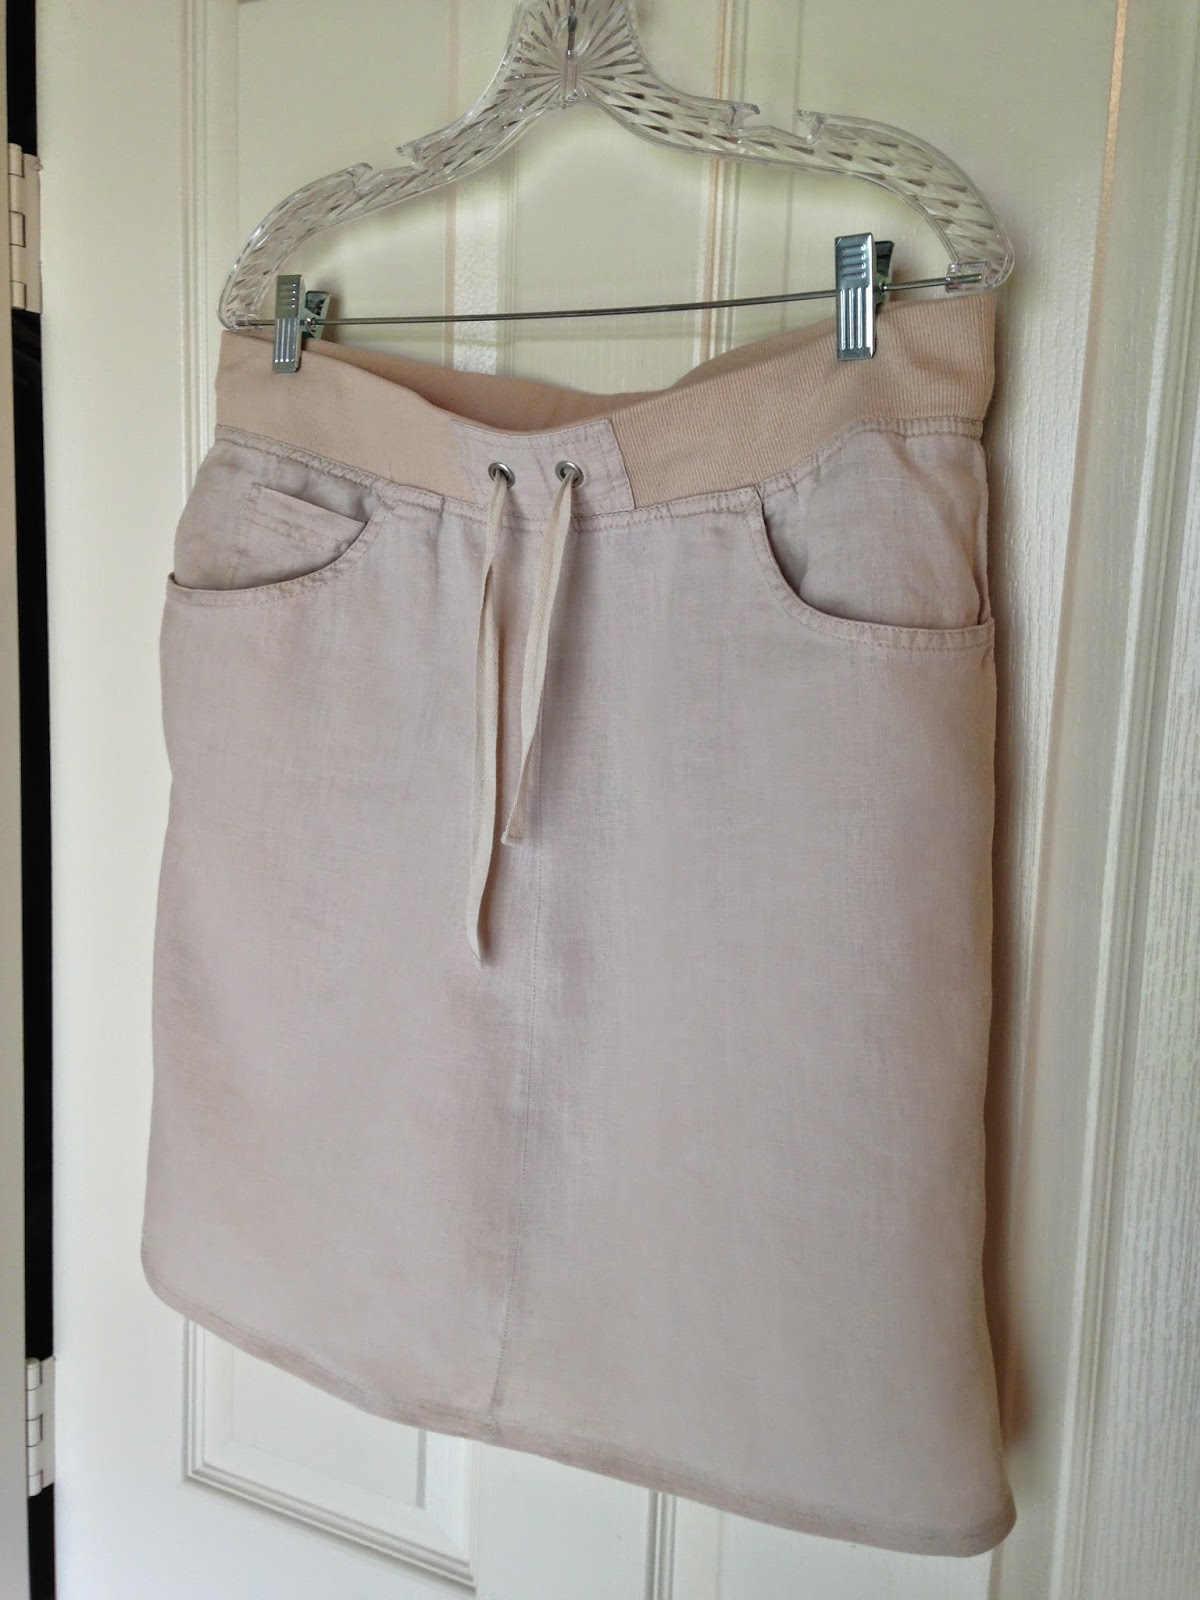 Ulterior Alterations: Linen Pant to Skirt Refashion Complete